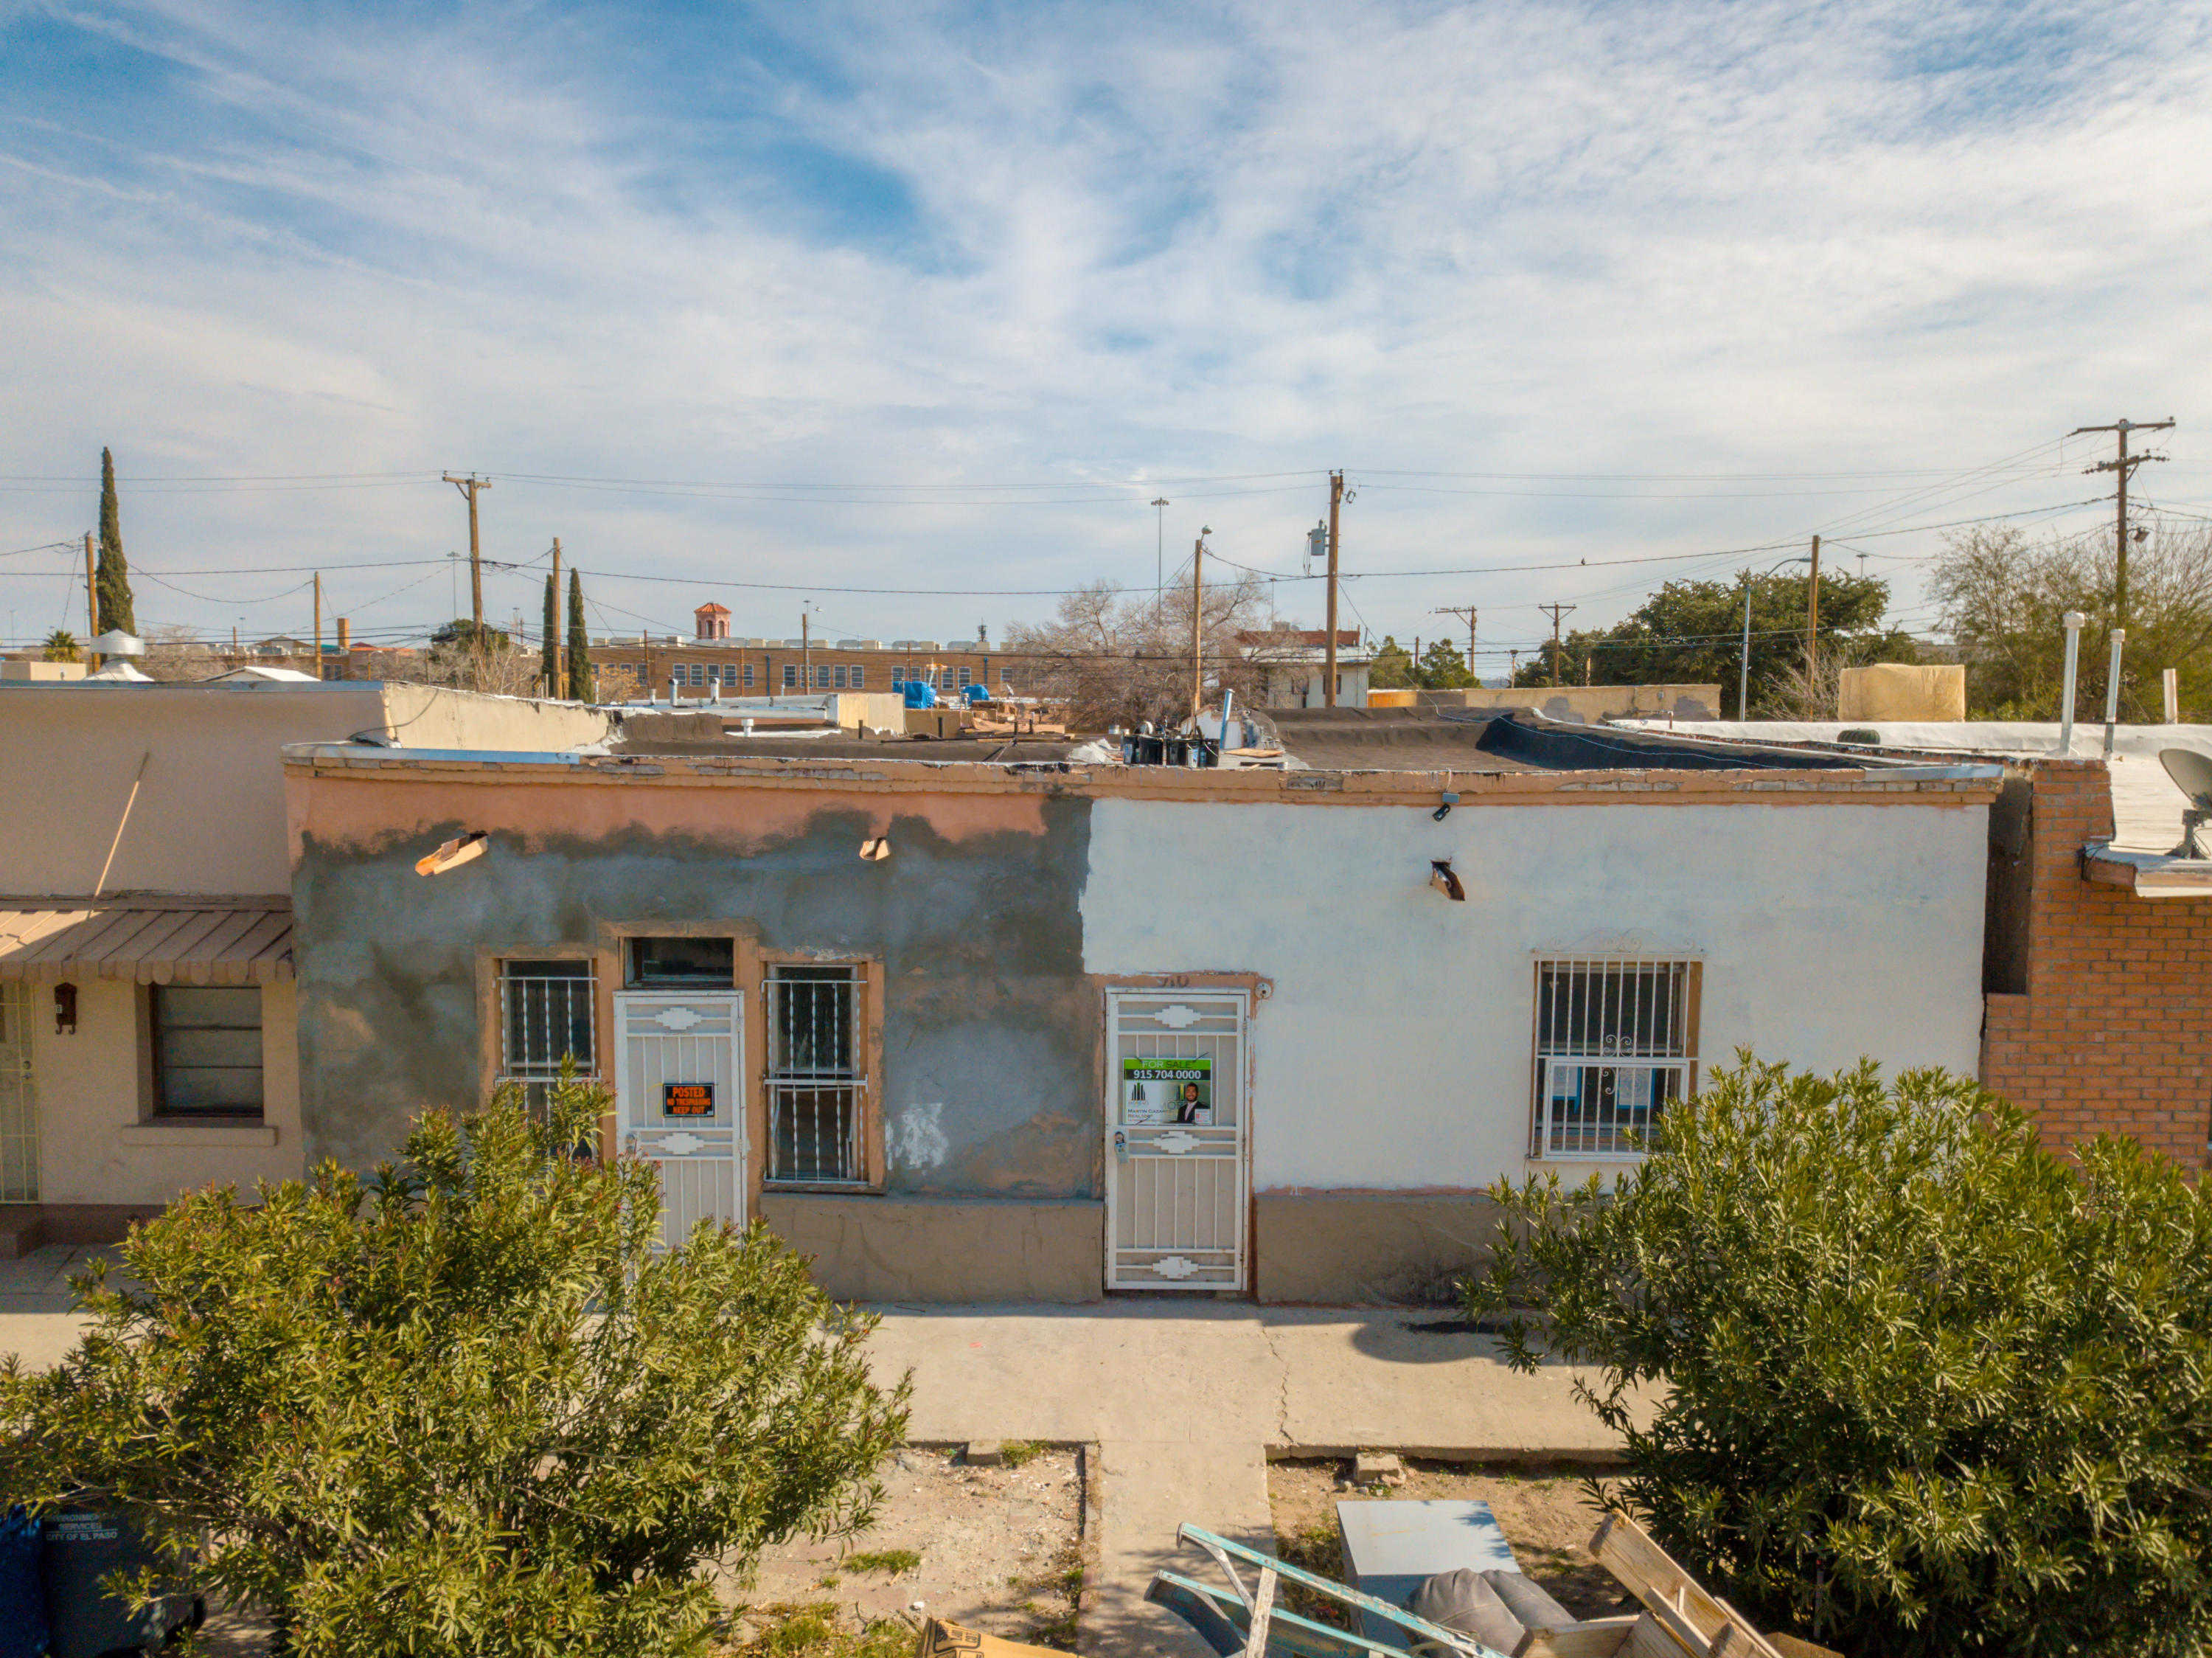 916 TAYS Street, El Paso, Texas 79901, ,Commercial,For sale,TAYS,841094